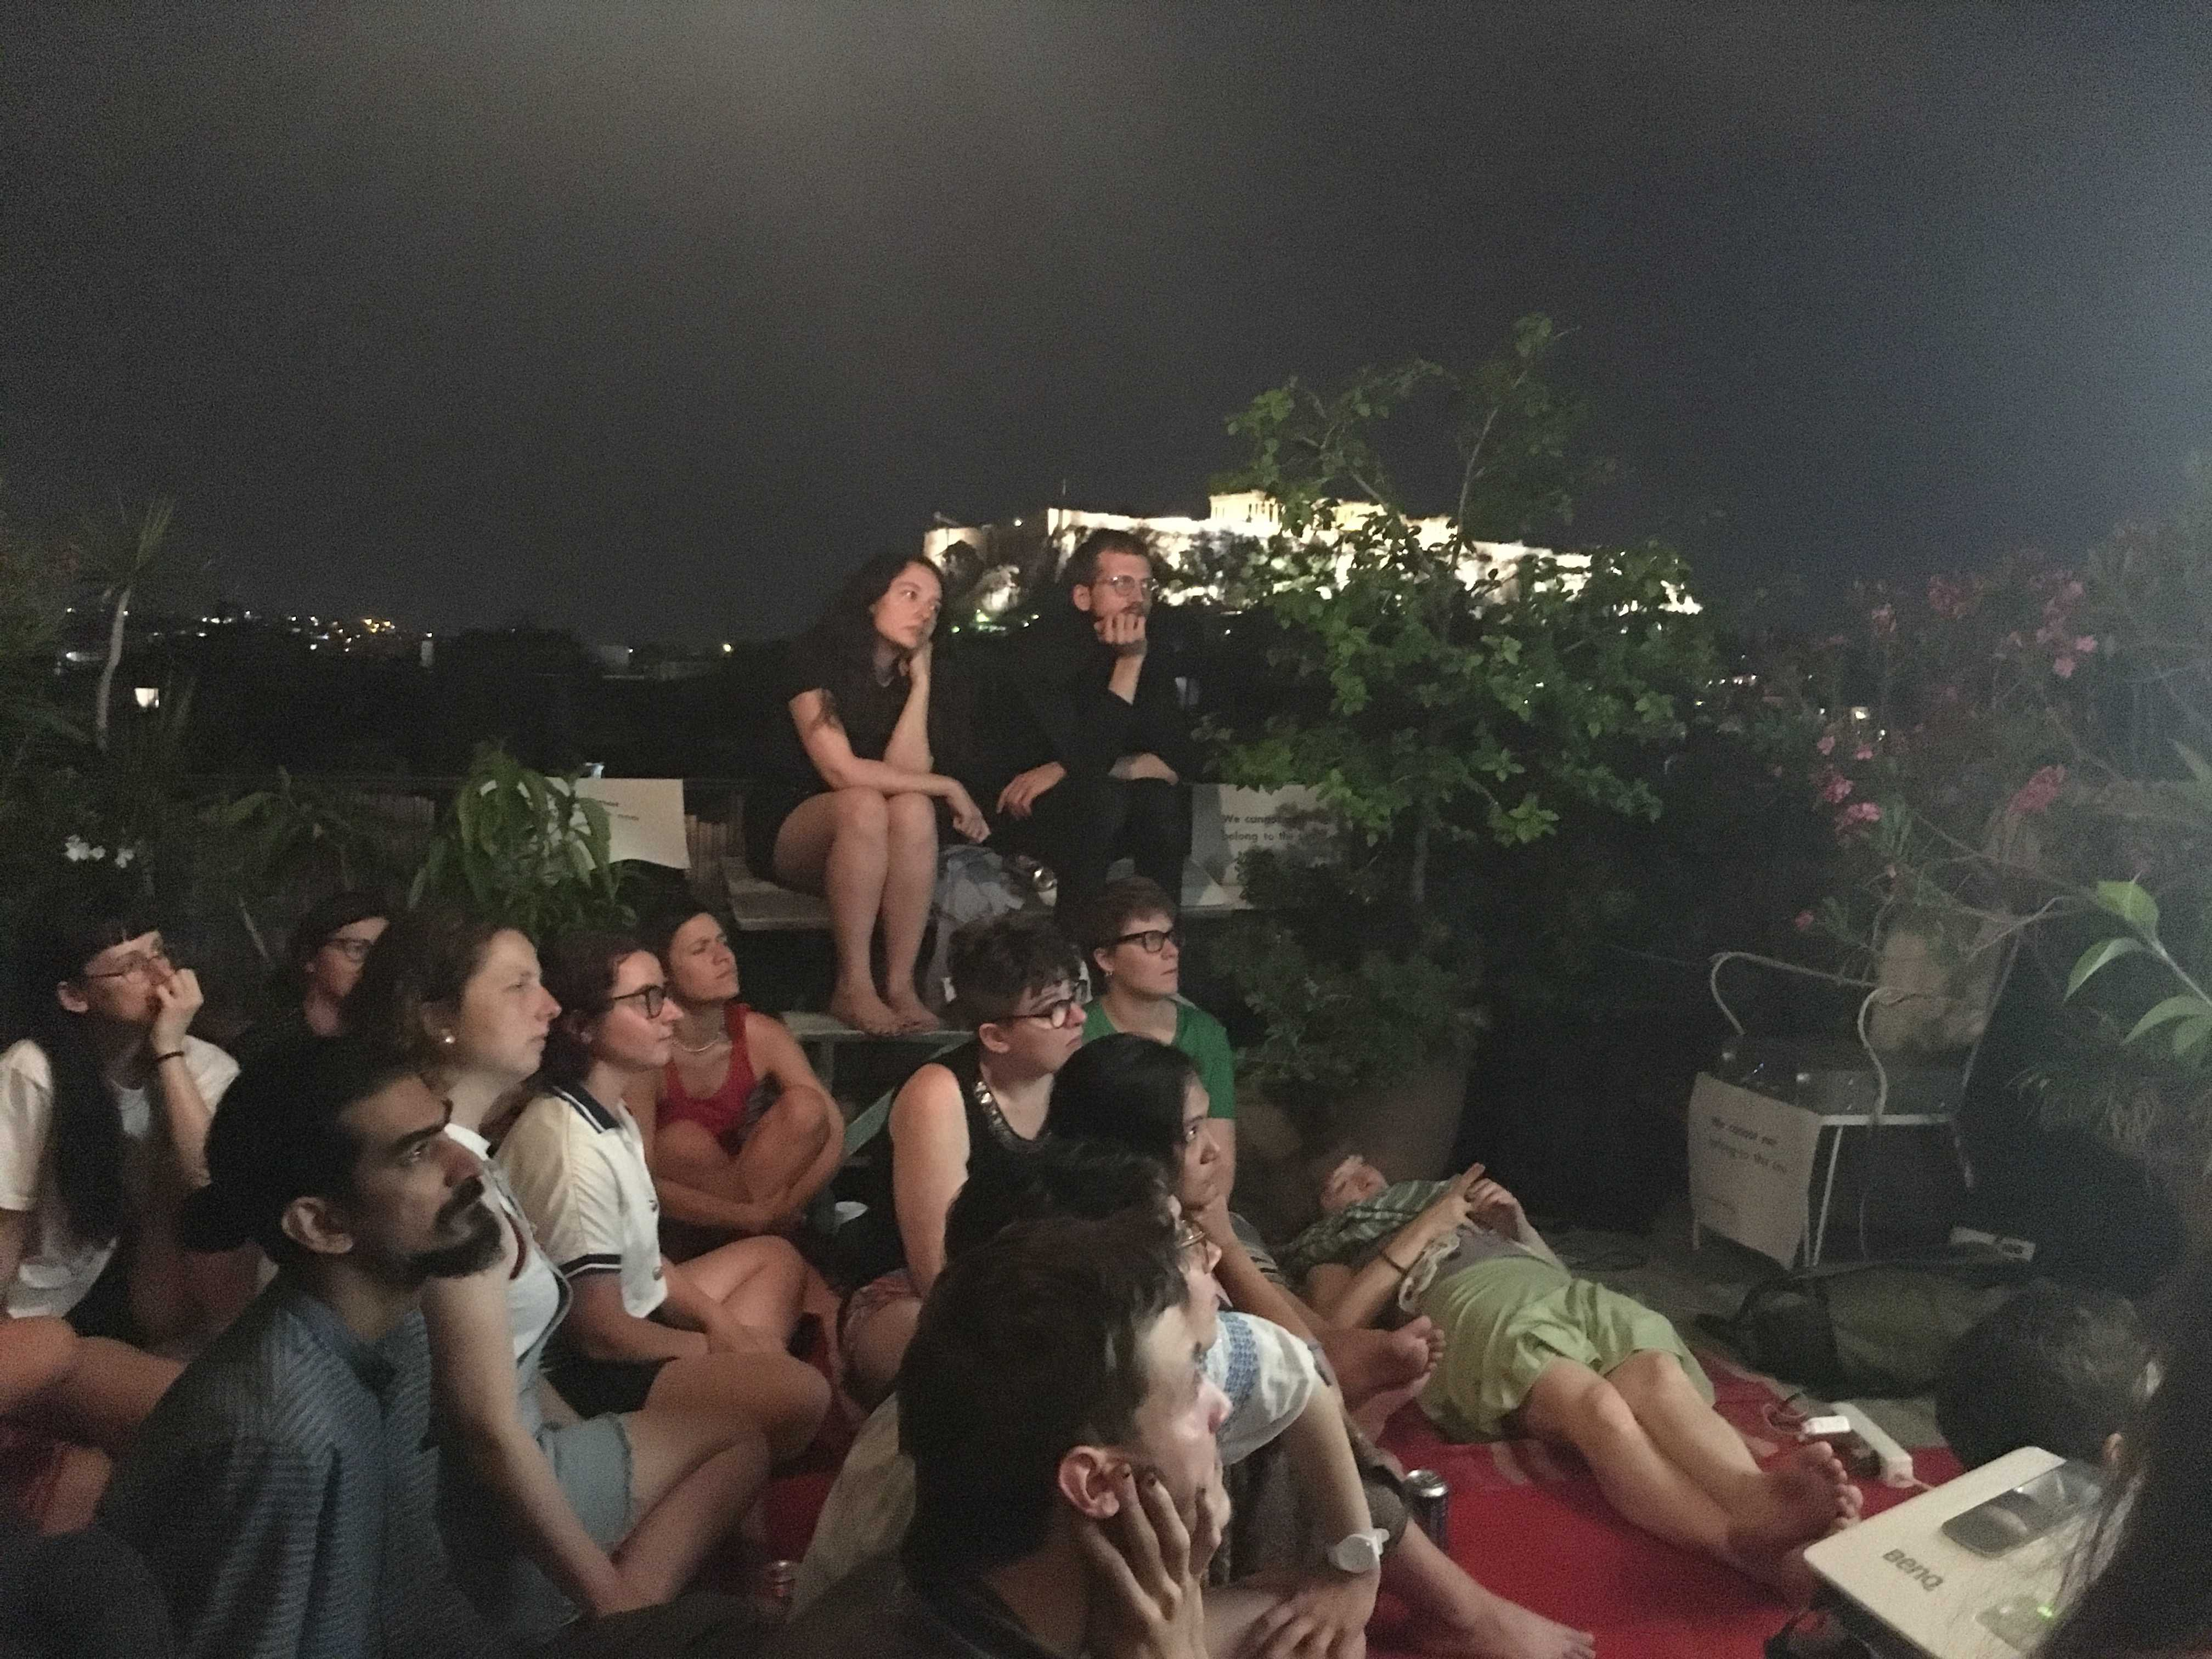 Film screening by DAI student Areumnari Ee during Rooftop Symposium - ISLANDTHINKING - in Exarcheia, Athens ~ Hosted by DAI Student Yen Noh and Alexander Seferiades